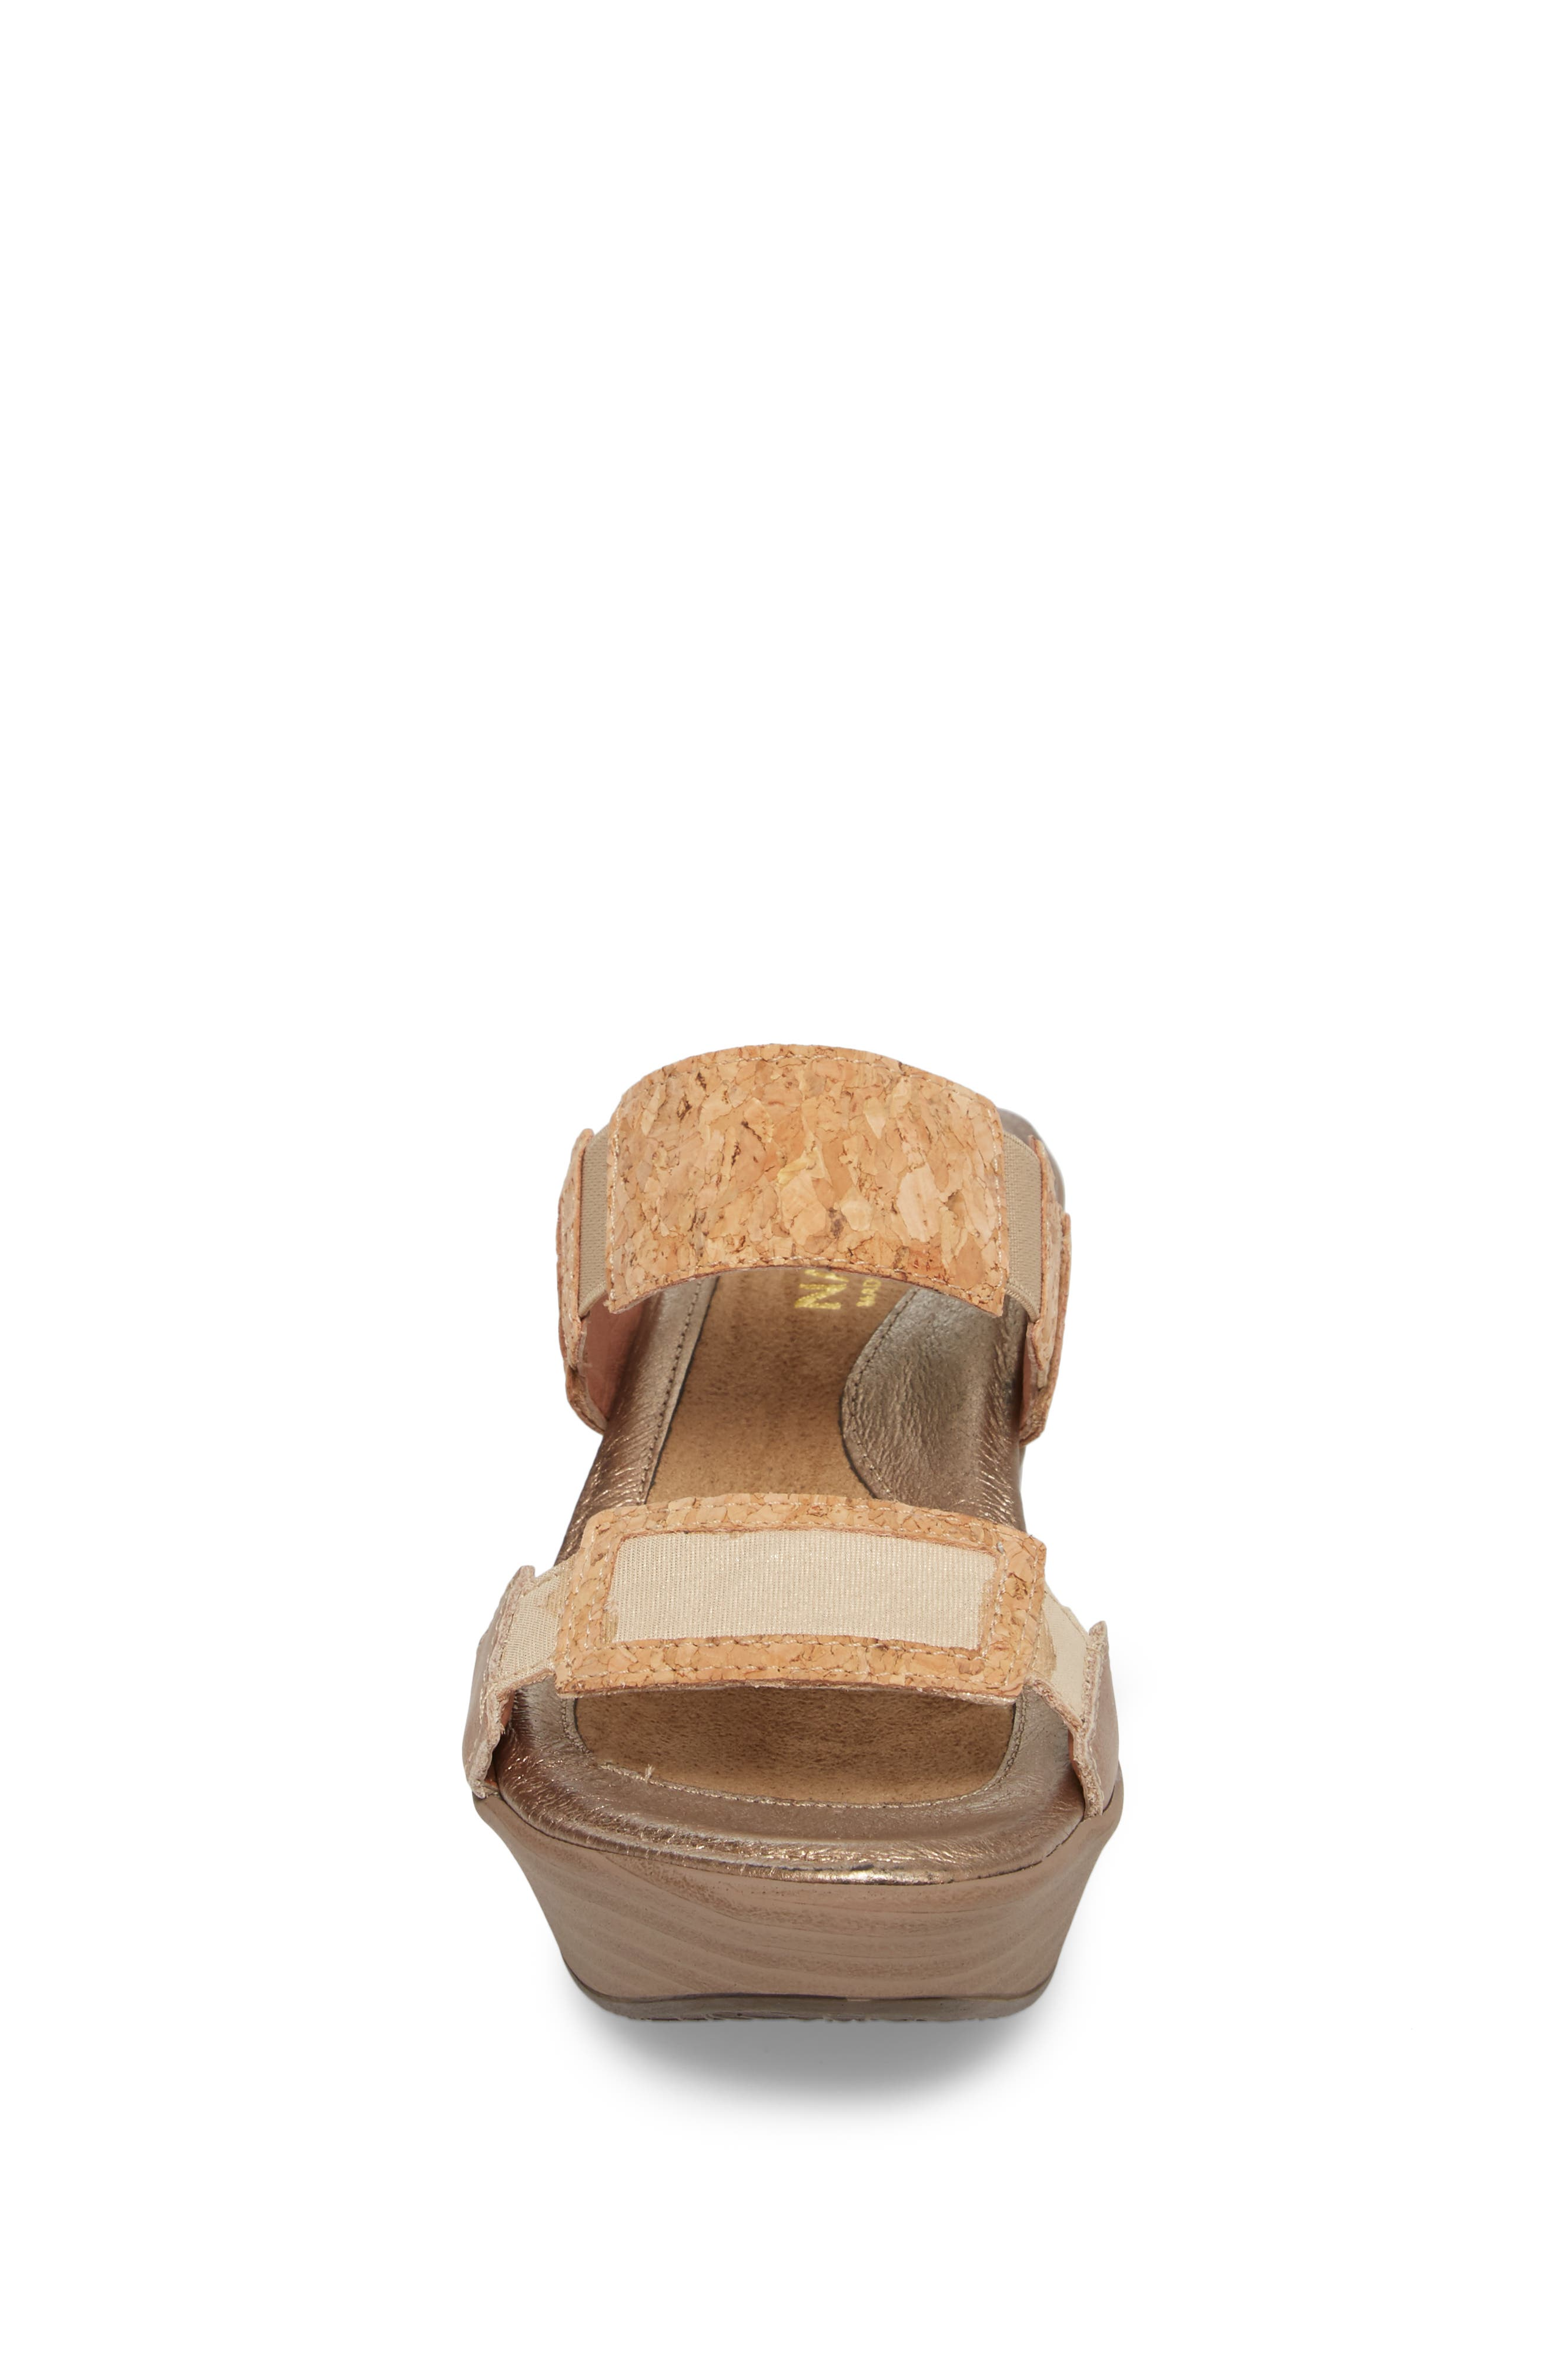 'Treasure' Sandal,                             Alternate thumbnail 4, color,                             Cork Leather